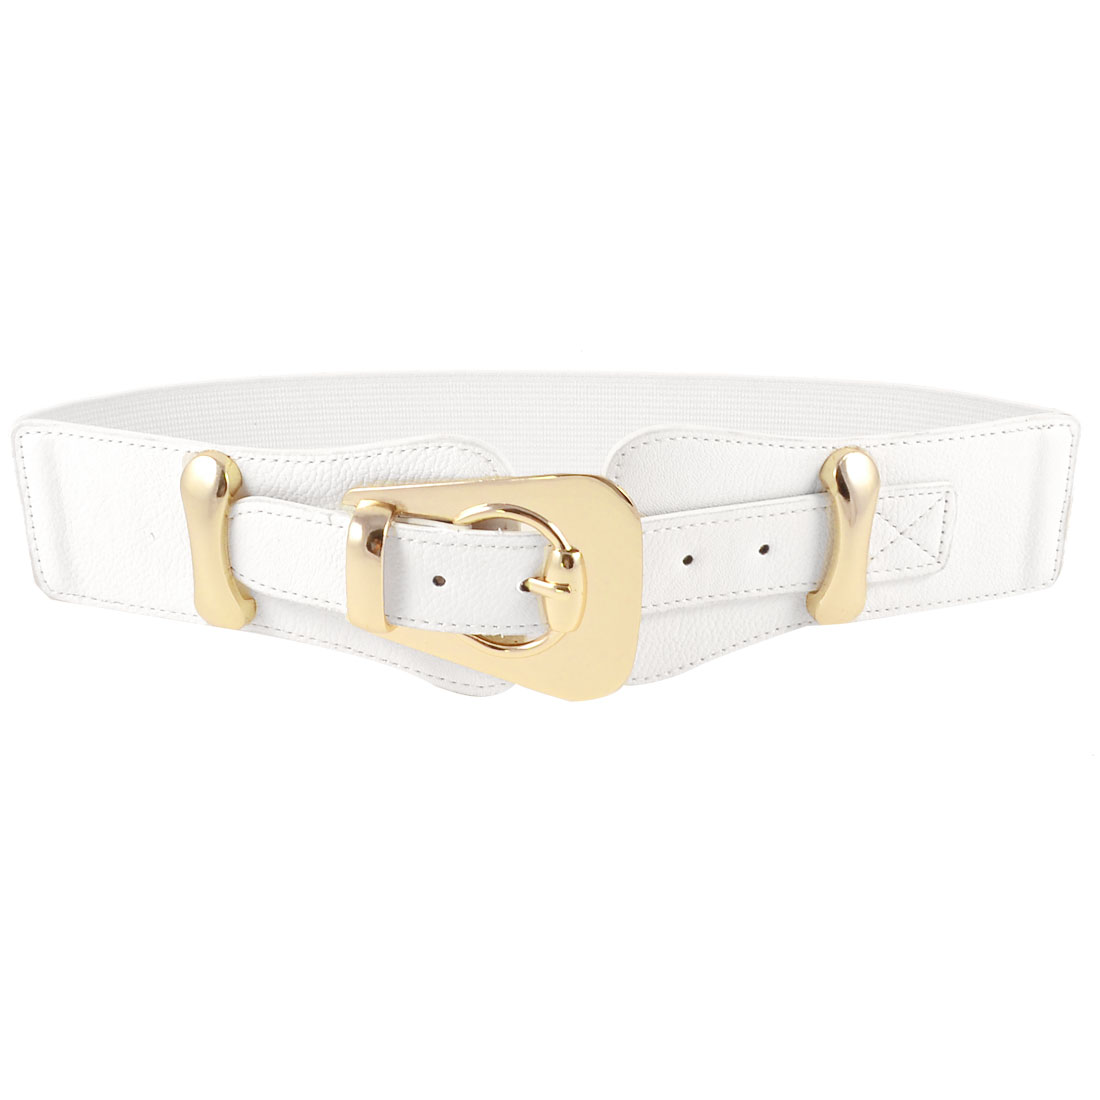 Lady Single Pin Buckle Crocodile Print Elastic Waist Cinch Belt Band White